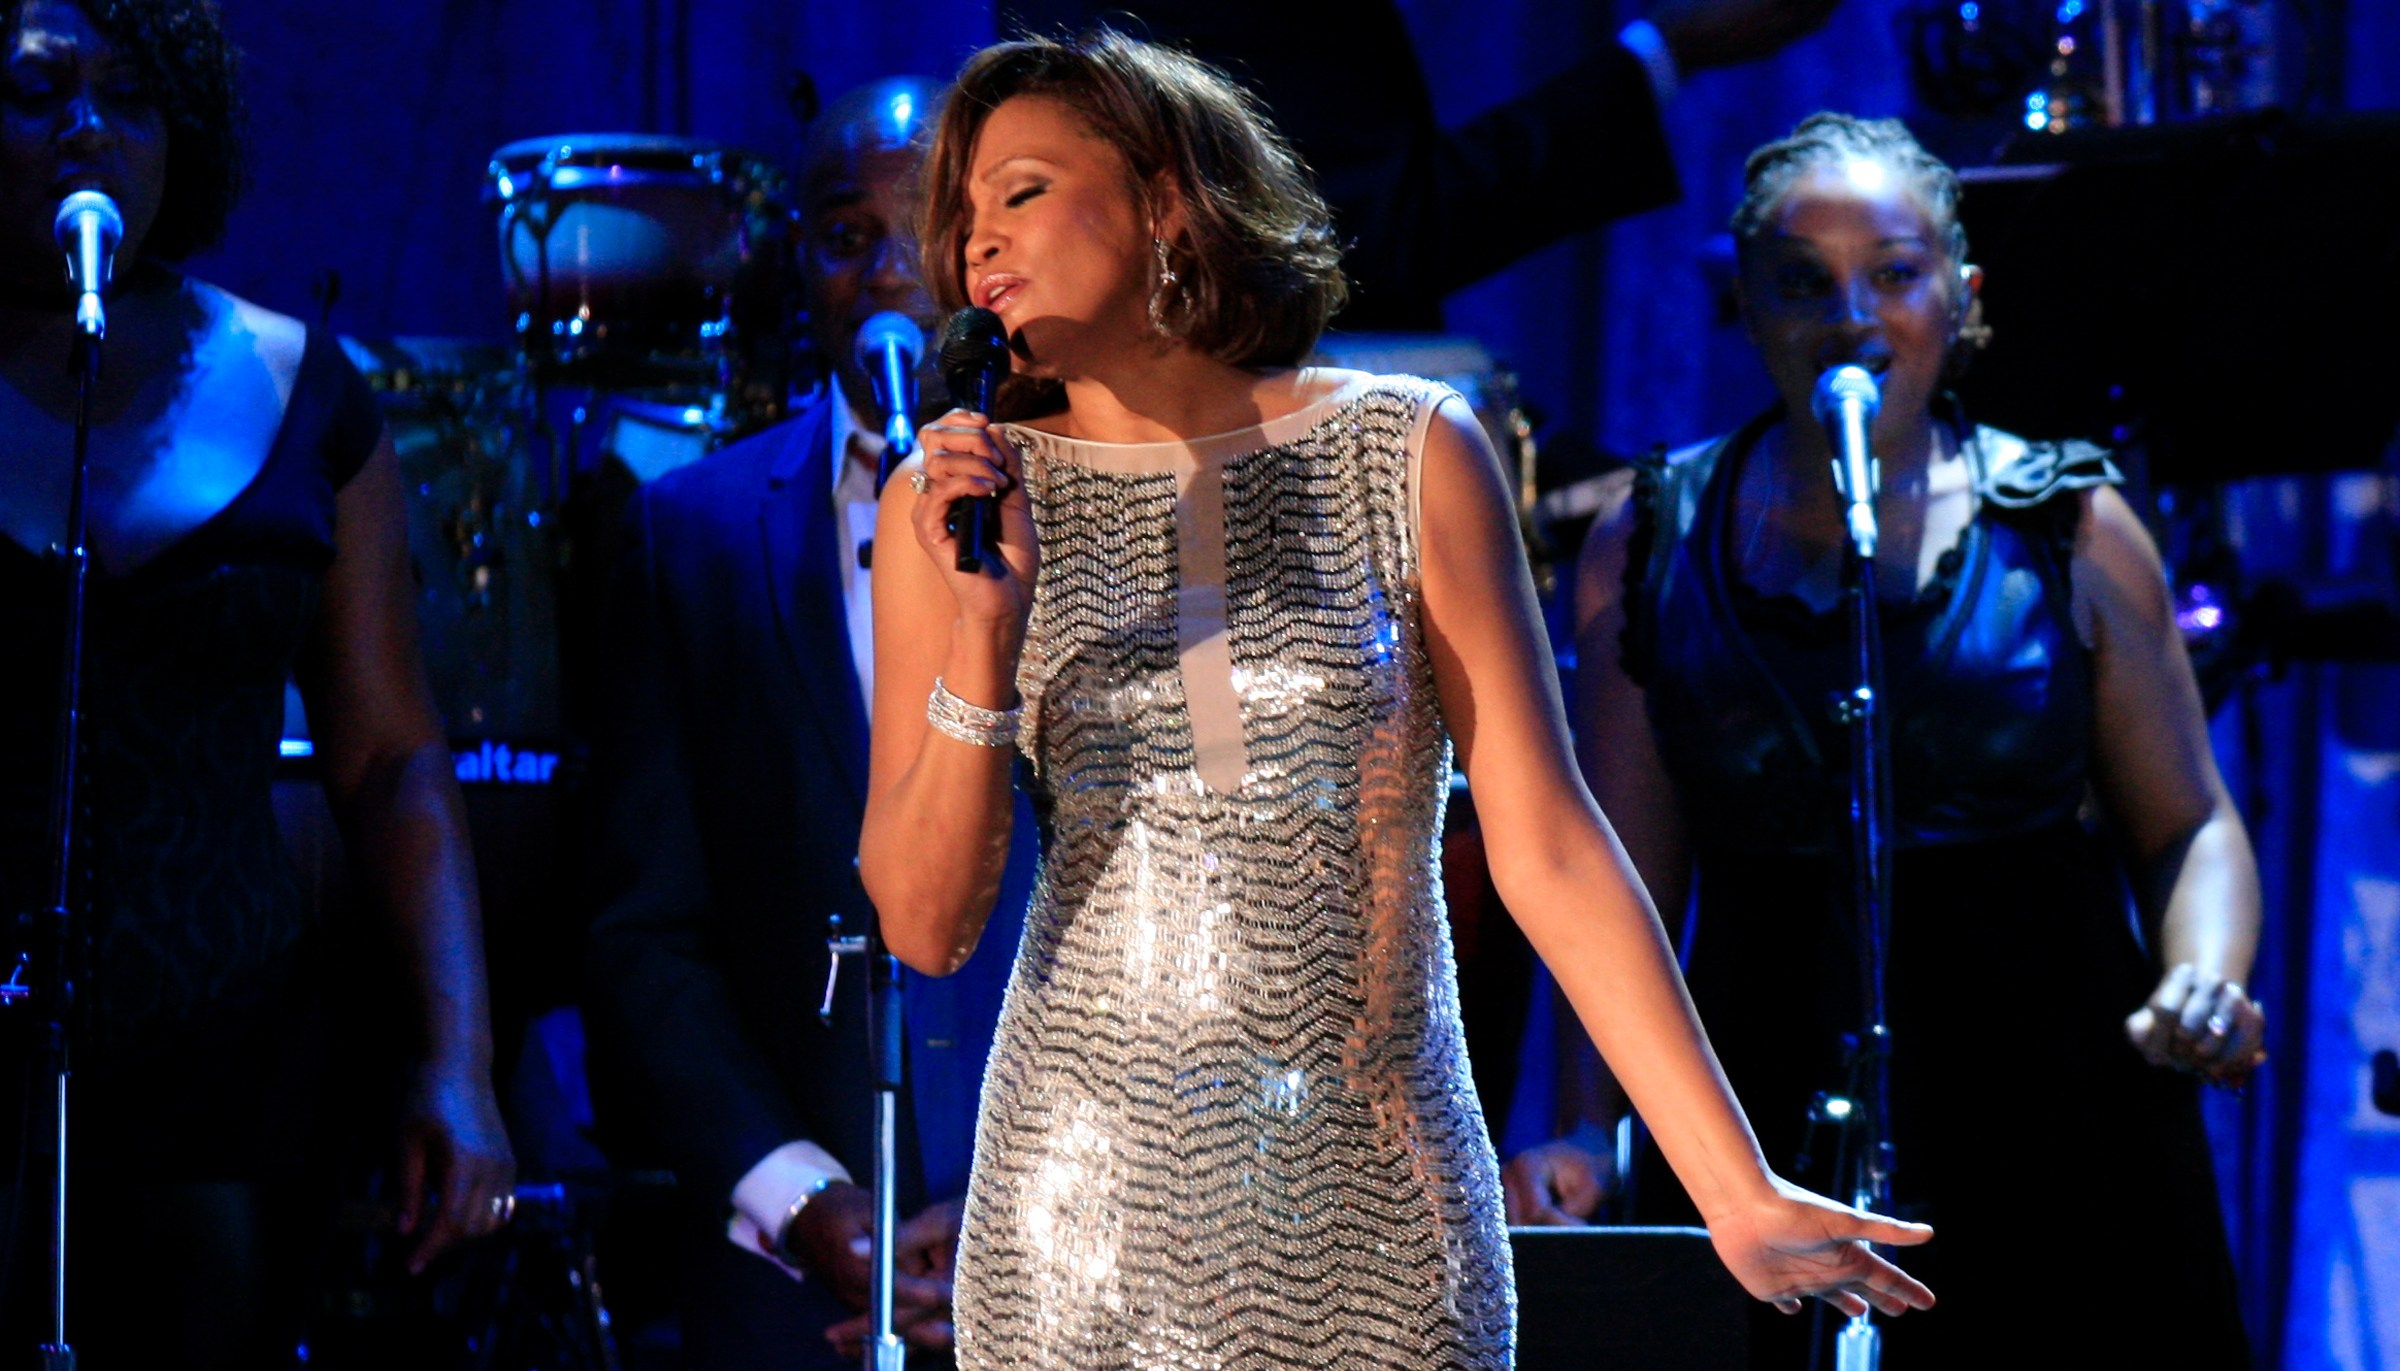 Singer Whitney Houston performs at the 2011 Clive Davis Pre–Grammy Gala and Salute to Industry Icon